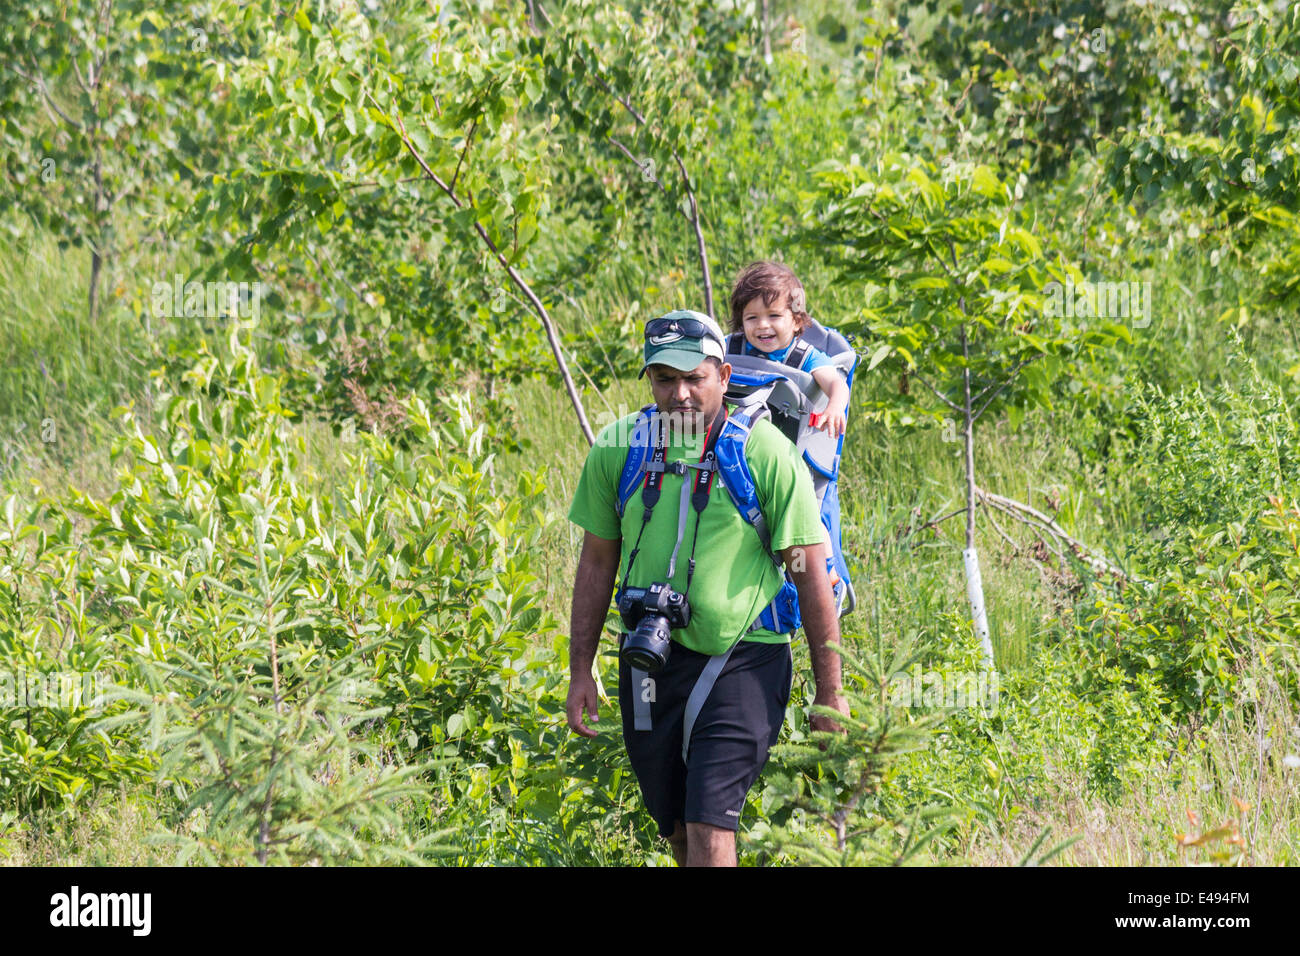 man-with-child-in-backpack-hiking-throug